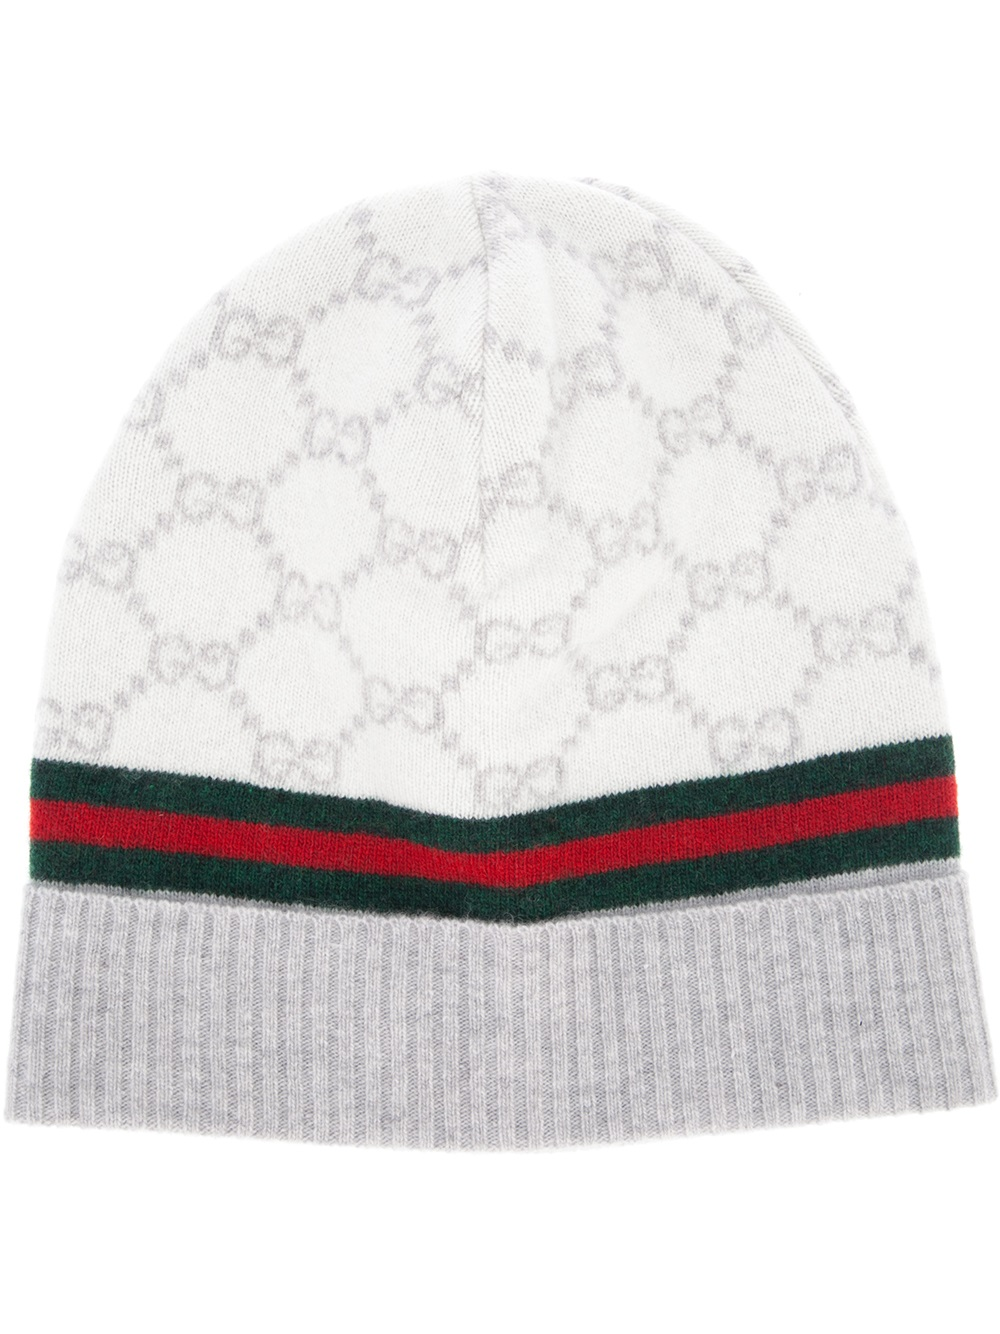 dca193bfdc3 Gucci Monogram Beanie Hat in Natural - Lyst